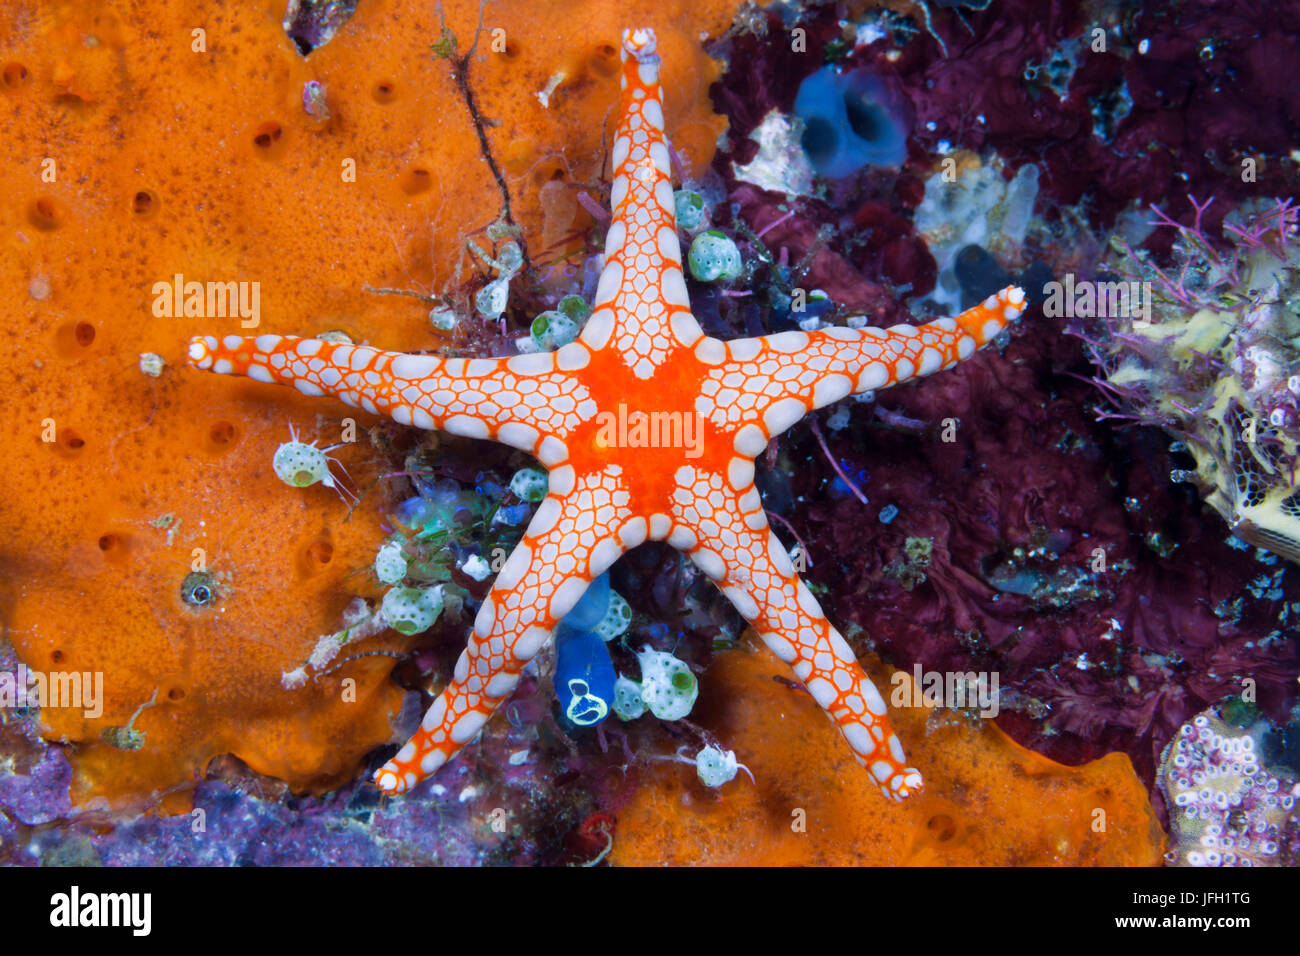 Red mesh starfish, Fromia monilis, ambon, the Moluccas, Indonesia - Stock Image